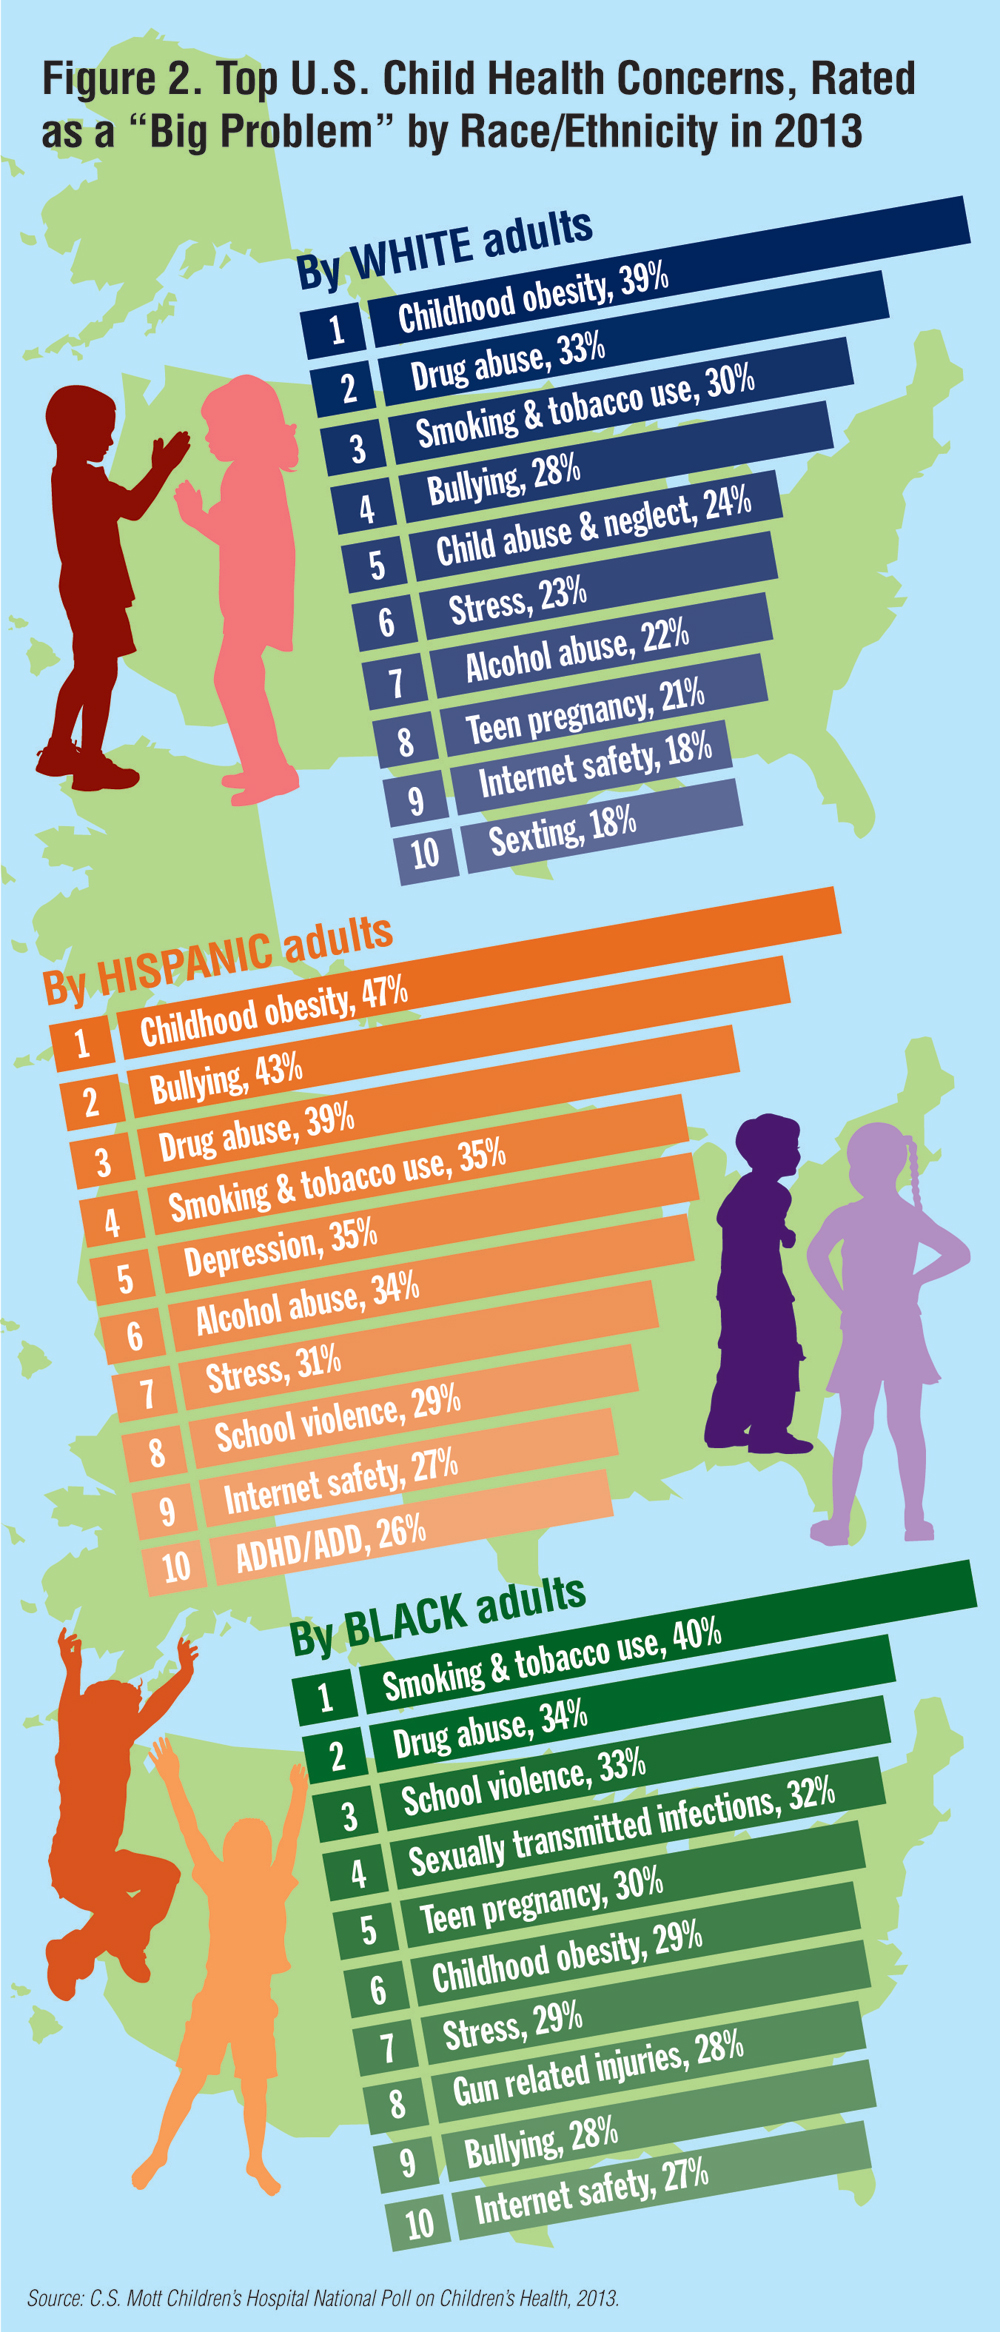 "Top U.S Child Health Concerns, Rated as a ""Big Problem"" by Race/Ethnicity in 2013"